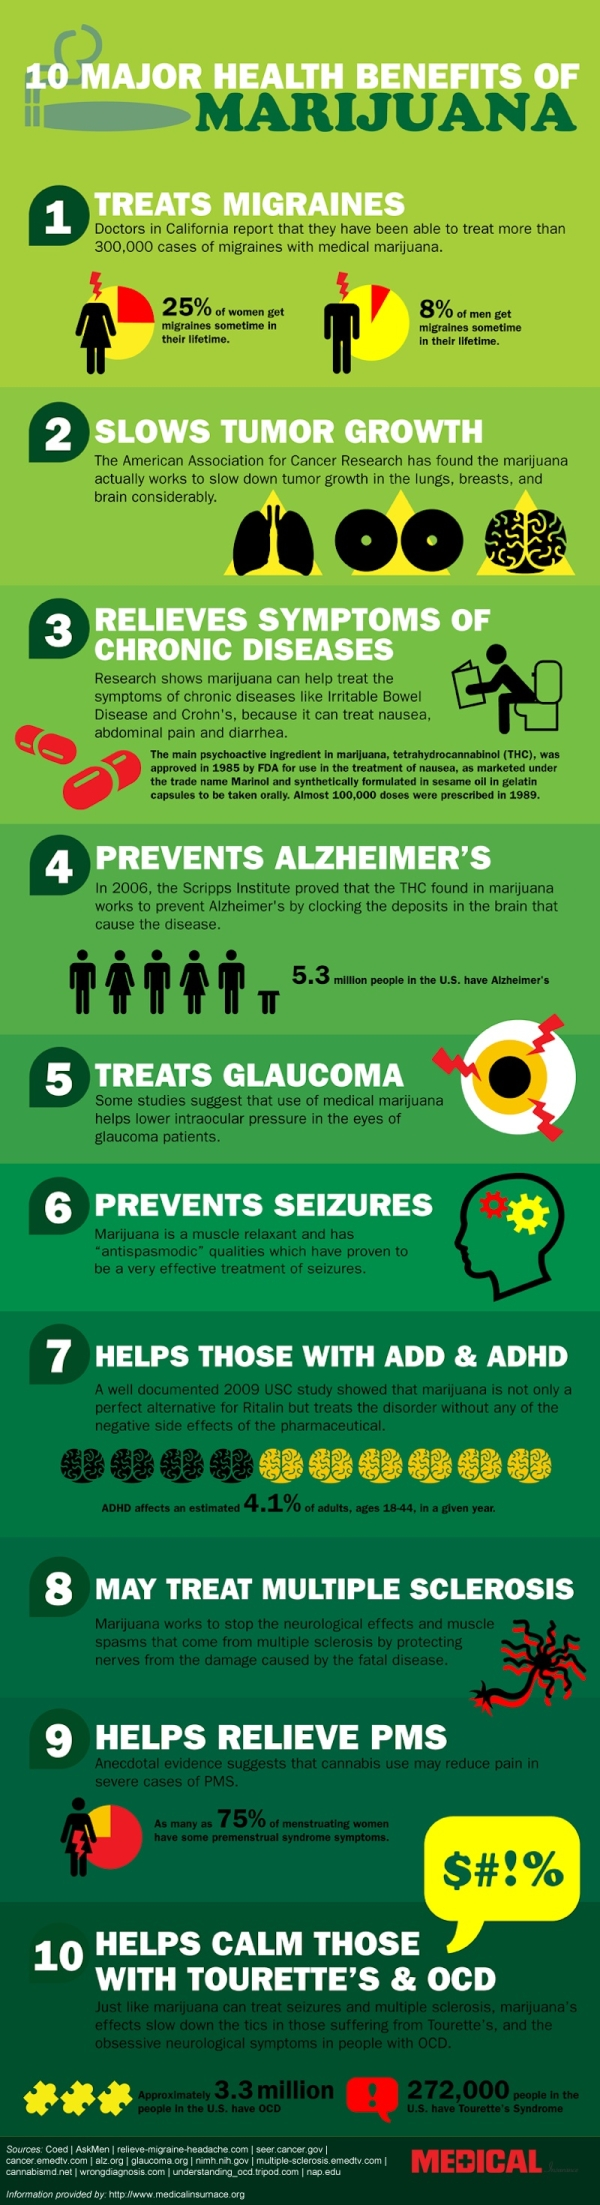 10 Major Health Benefits of Marijuana